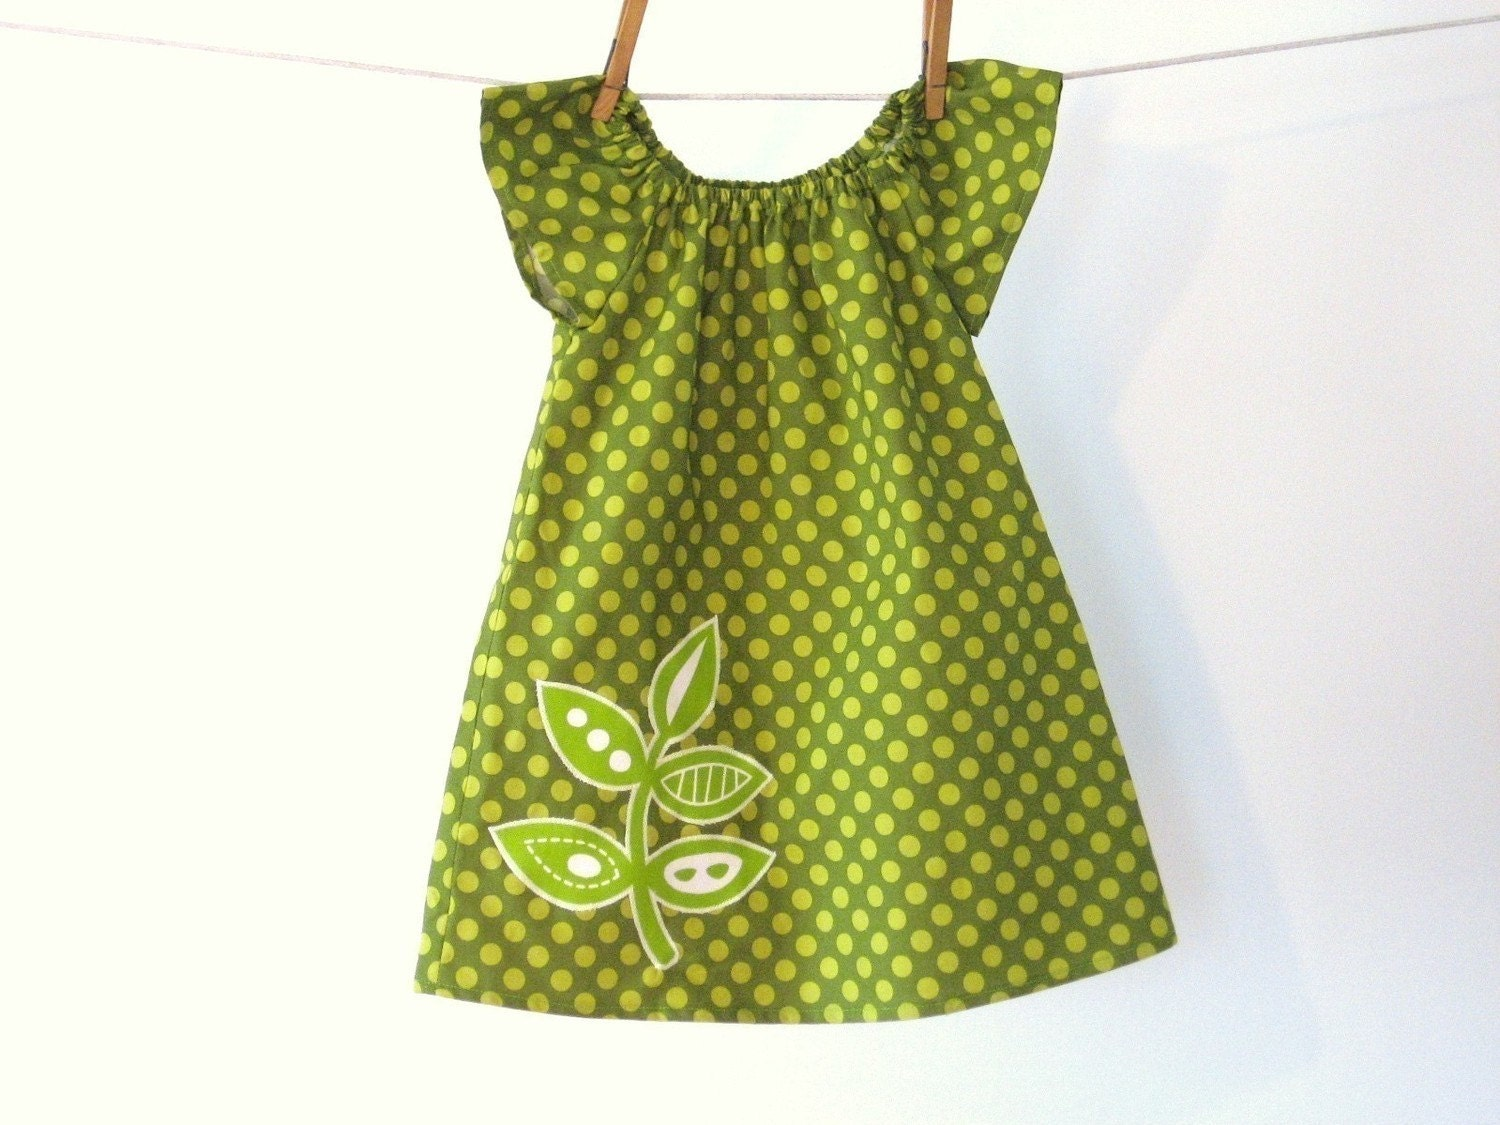 Mod  olive green and chartreuse polka dot dress with leaves applique